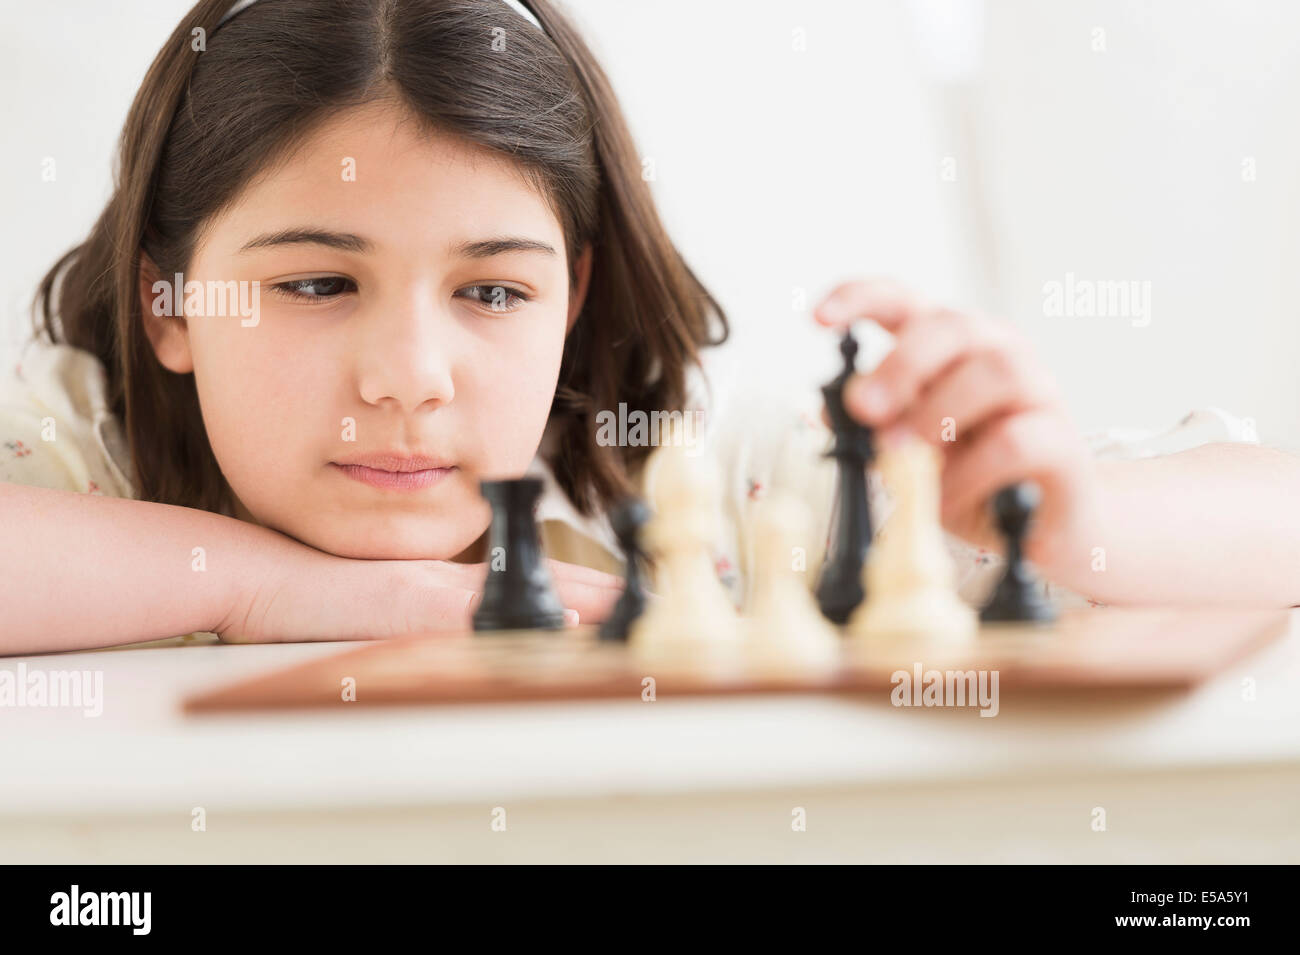 Hispanic girl playing chess Banque D'Images